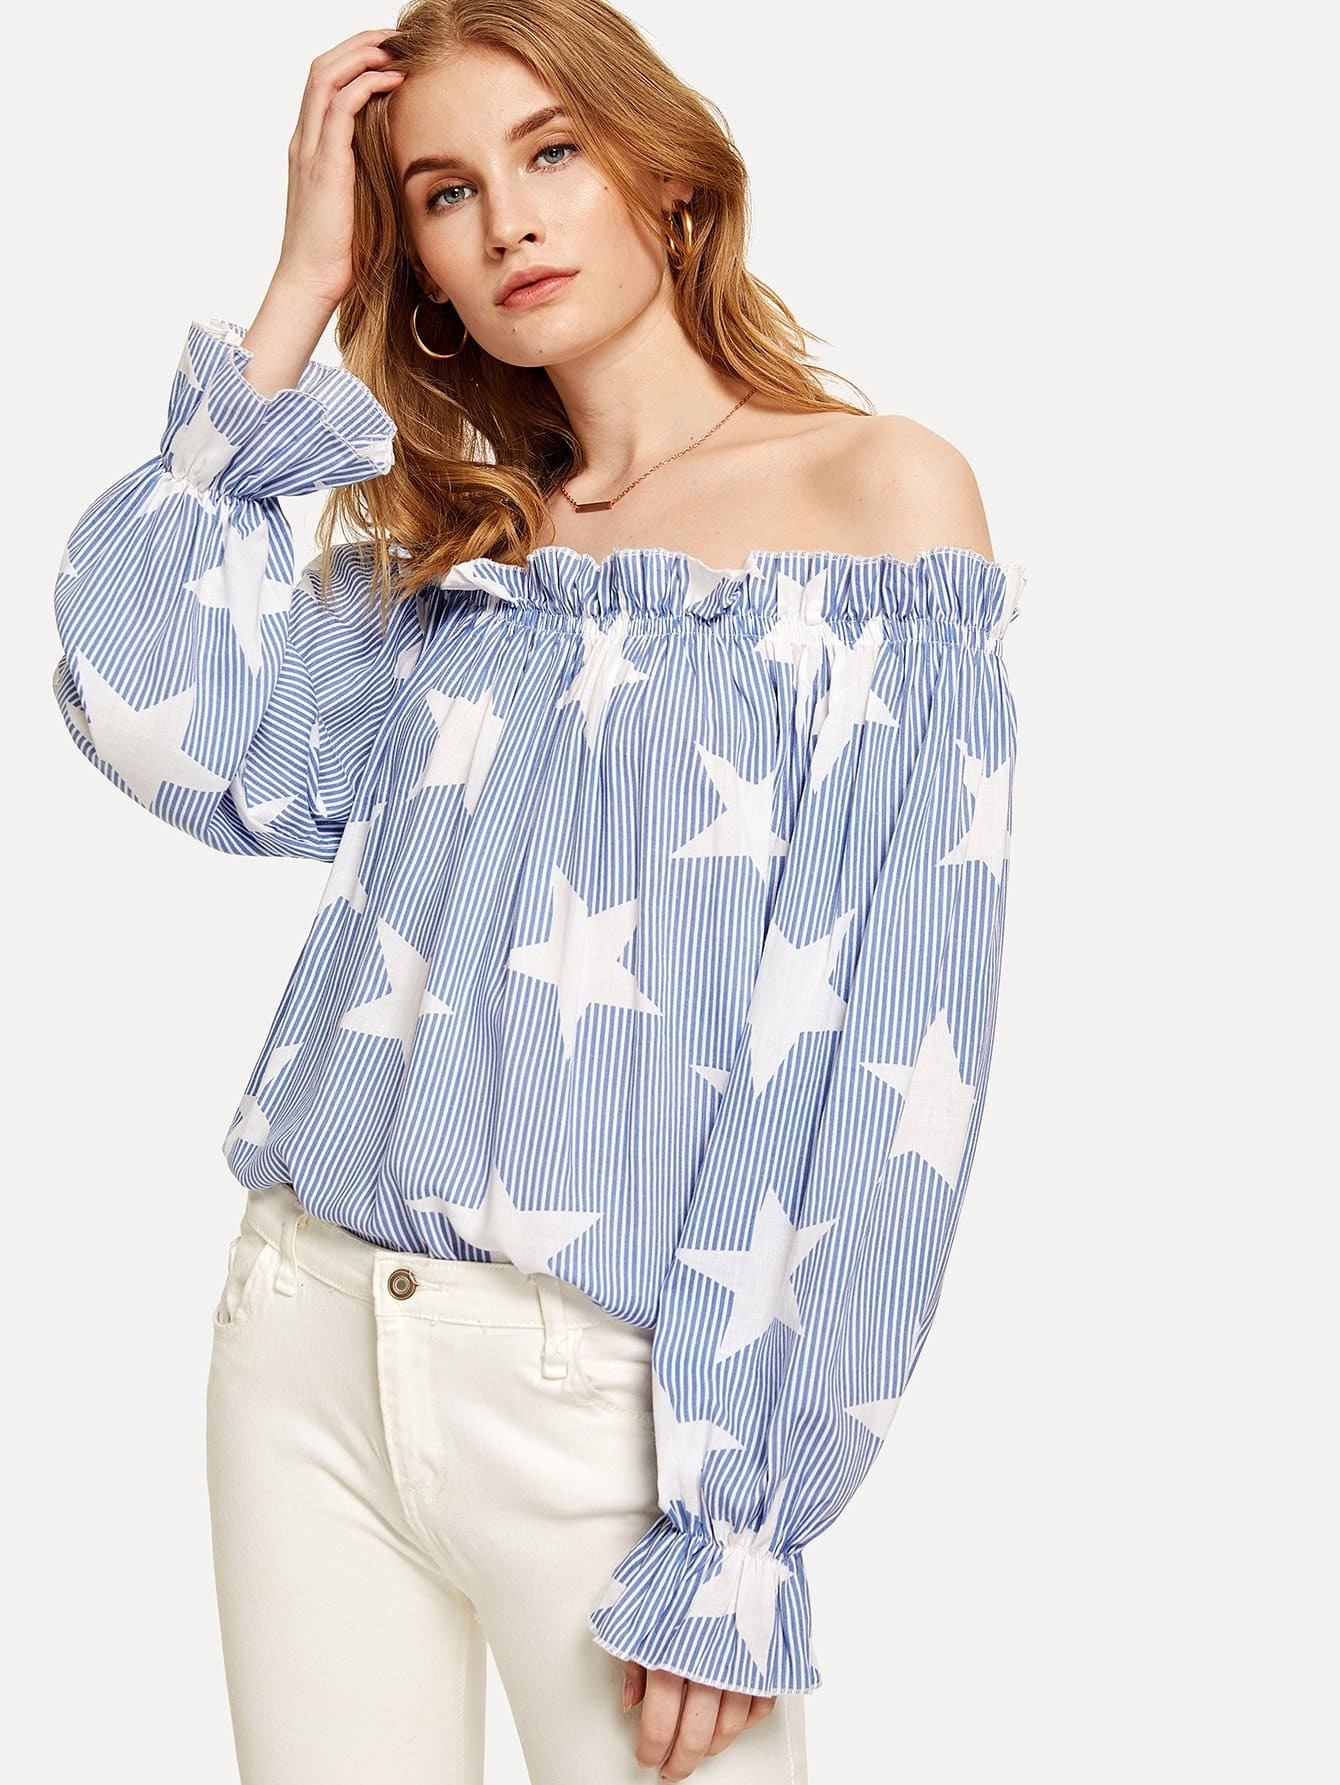 63d025d59ac71 Off Shoulder Frill Trim Striped Top EmmaCloth-Women Fast Fashion Online